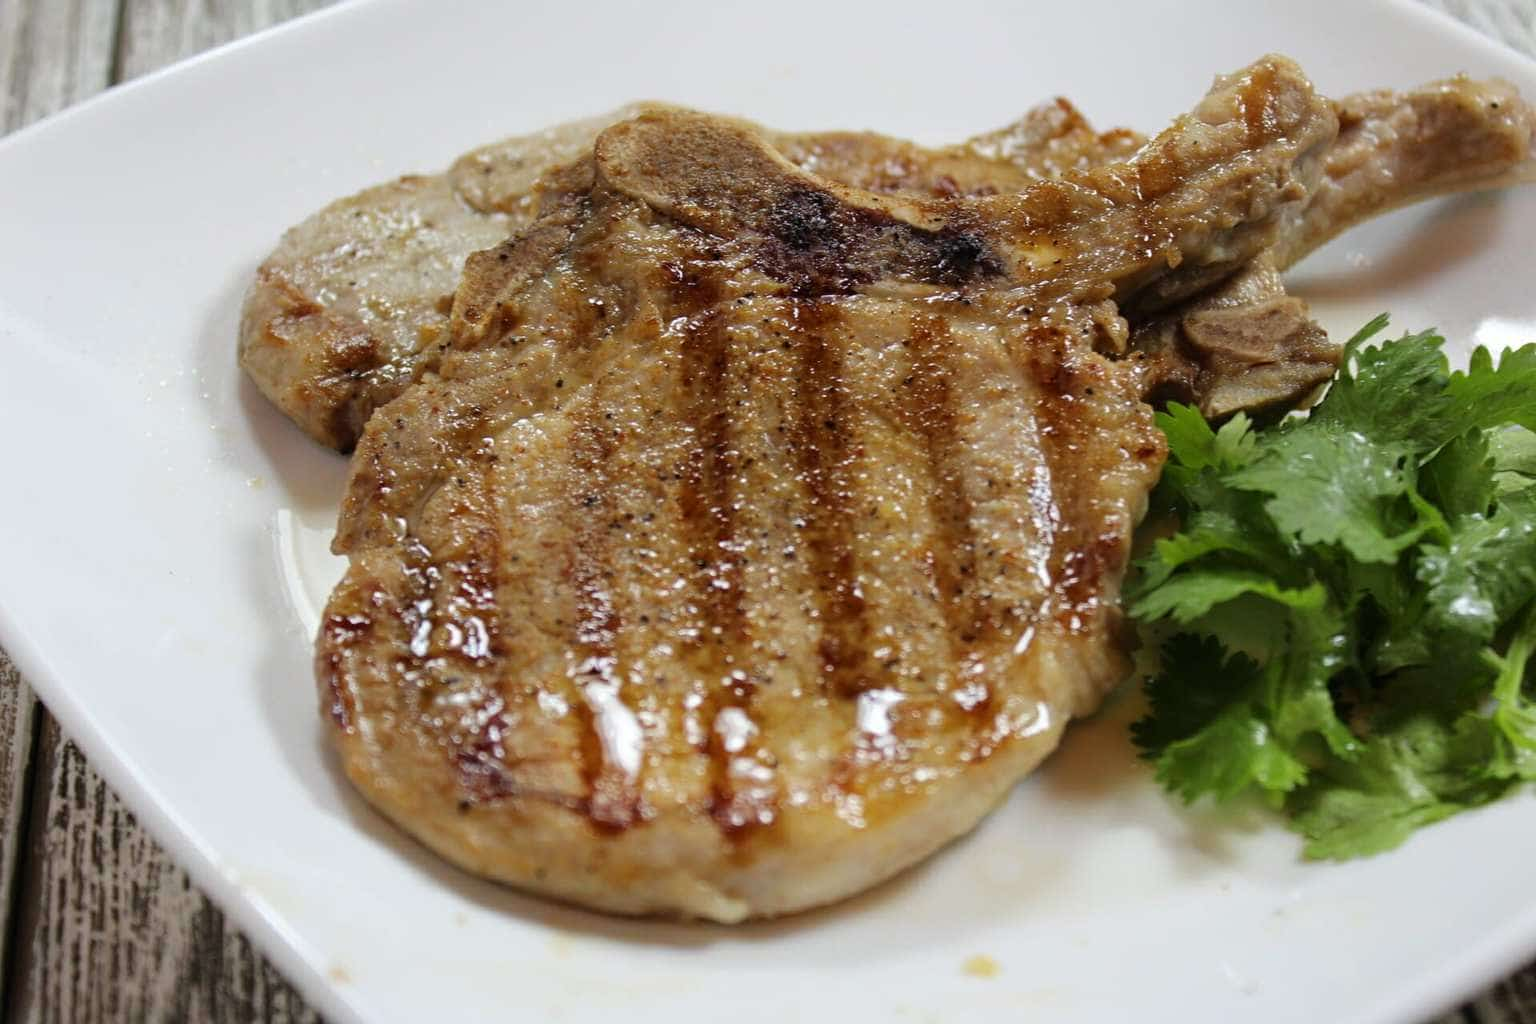 Grilled Pork Chops on a white plate.